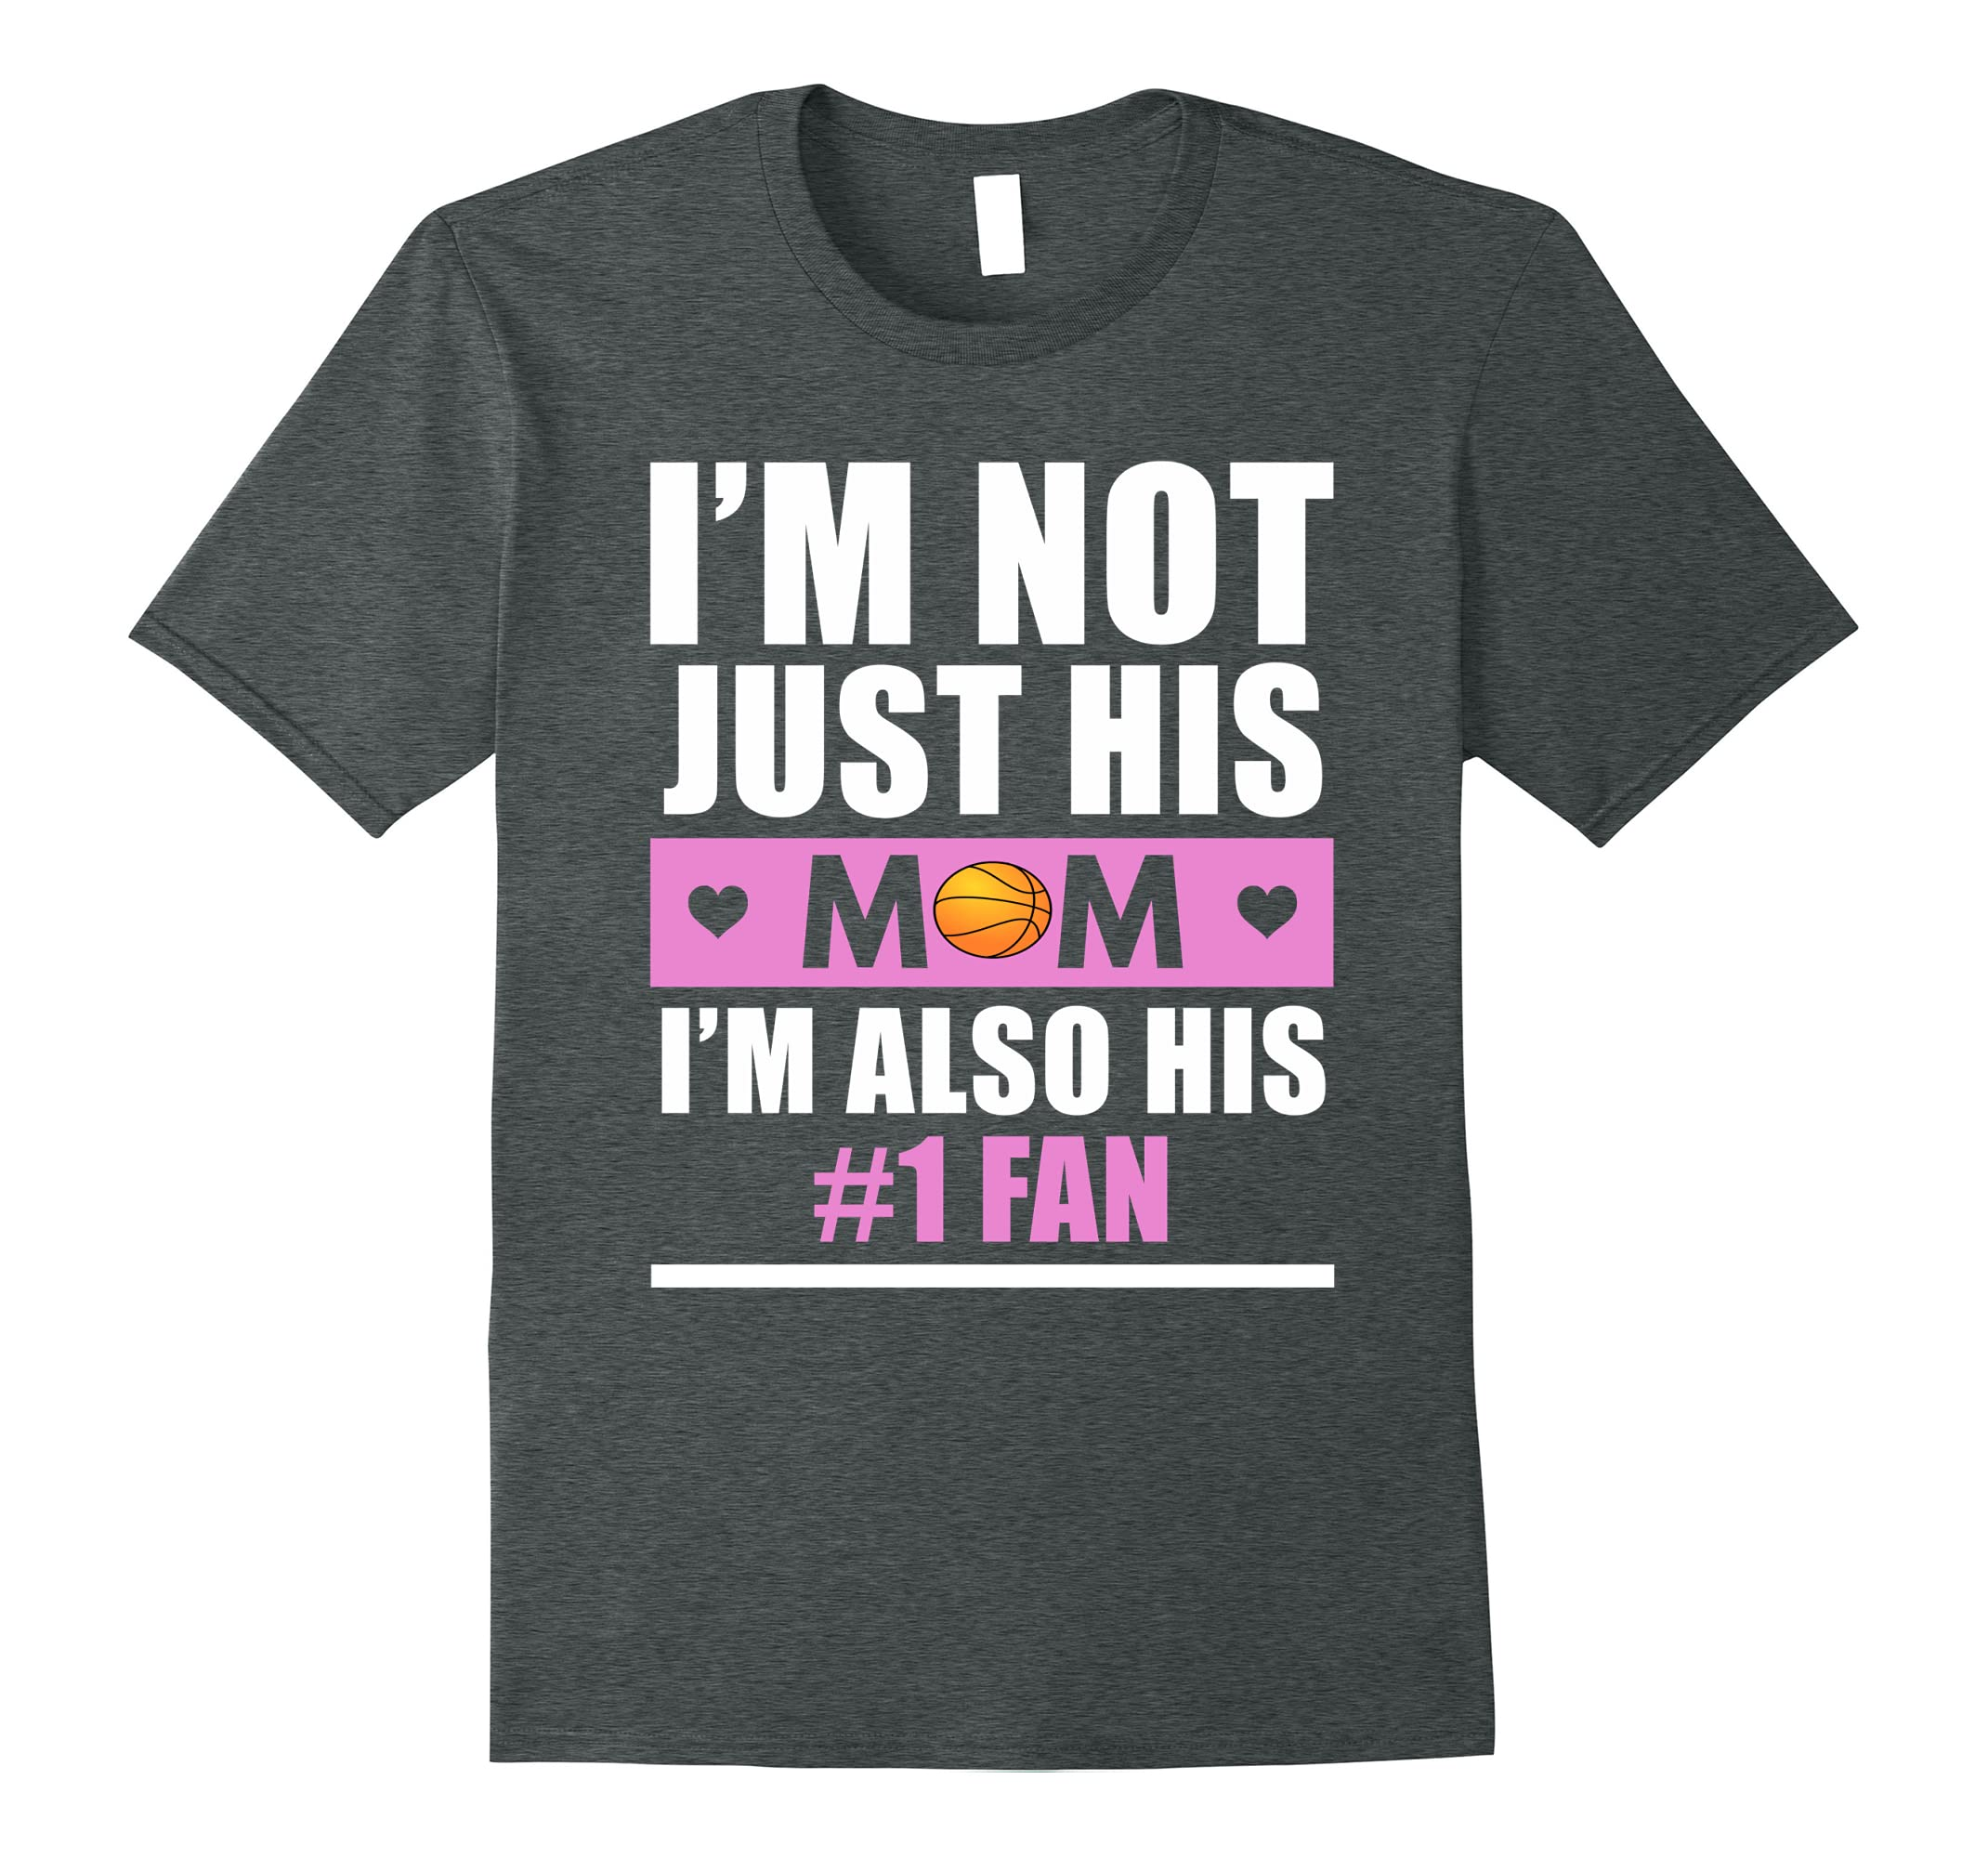 98861f1ea8 Funny Basketball Mom T-Shirt – I'm Not Just His Mom #1 Fan-RT ...